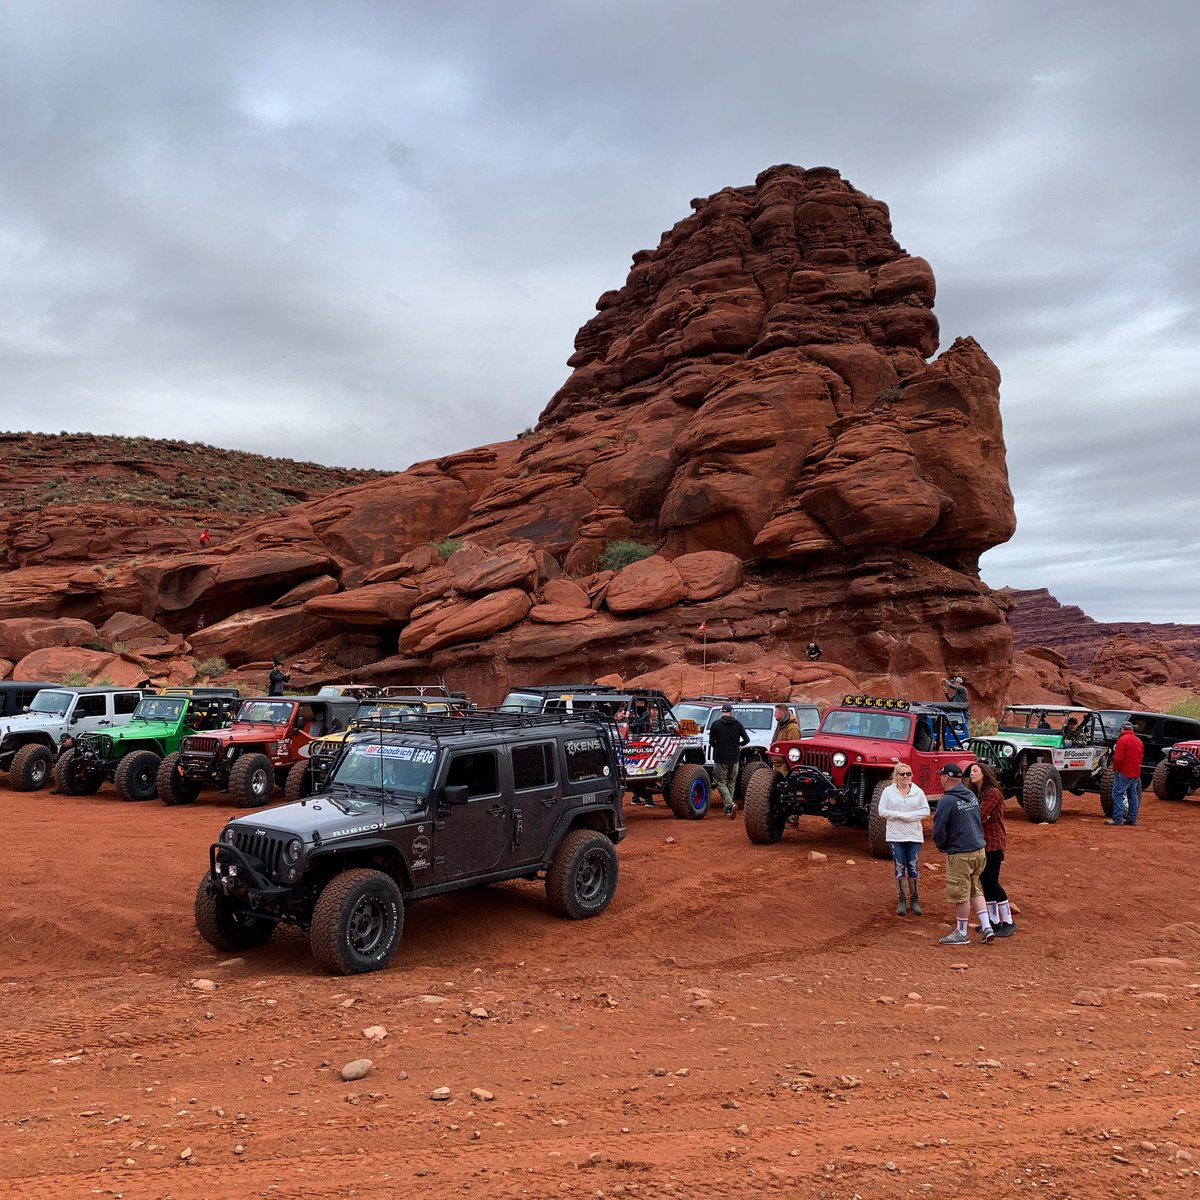 The scene before we hit the trail (yesterday morning) with @bfgoodrichtires at #EasterJeepSafari in #Moab. #kanecreek #ejs2019 #builtonBFG #km3 #jeep #offroad<br>http://pic.twitter.com/sZWyVZS6rv